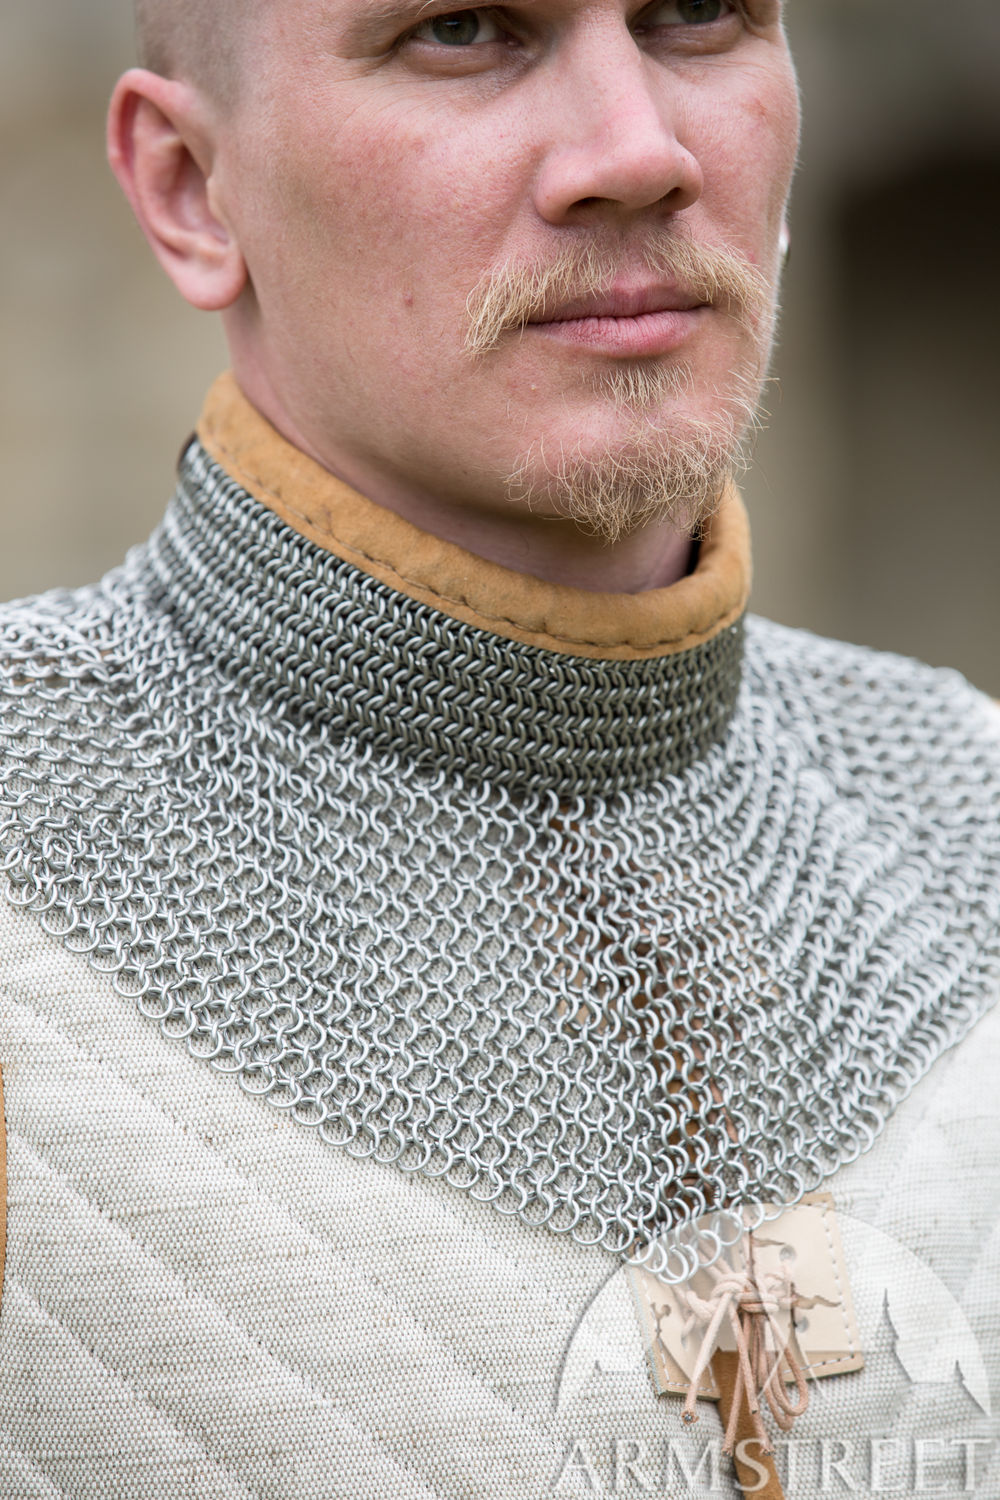 Stainless steel chainmail gorget